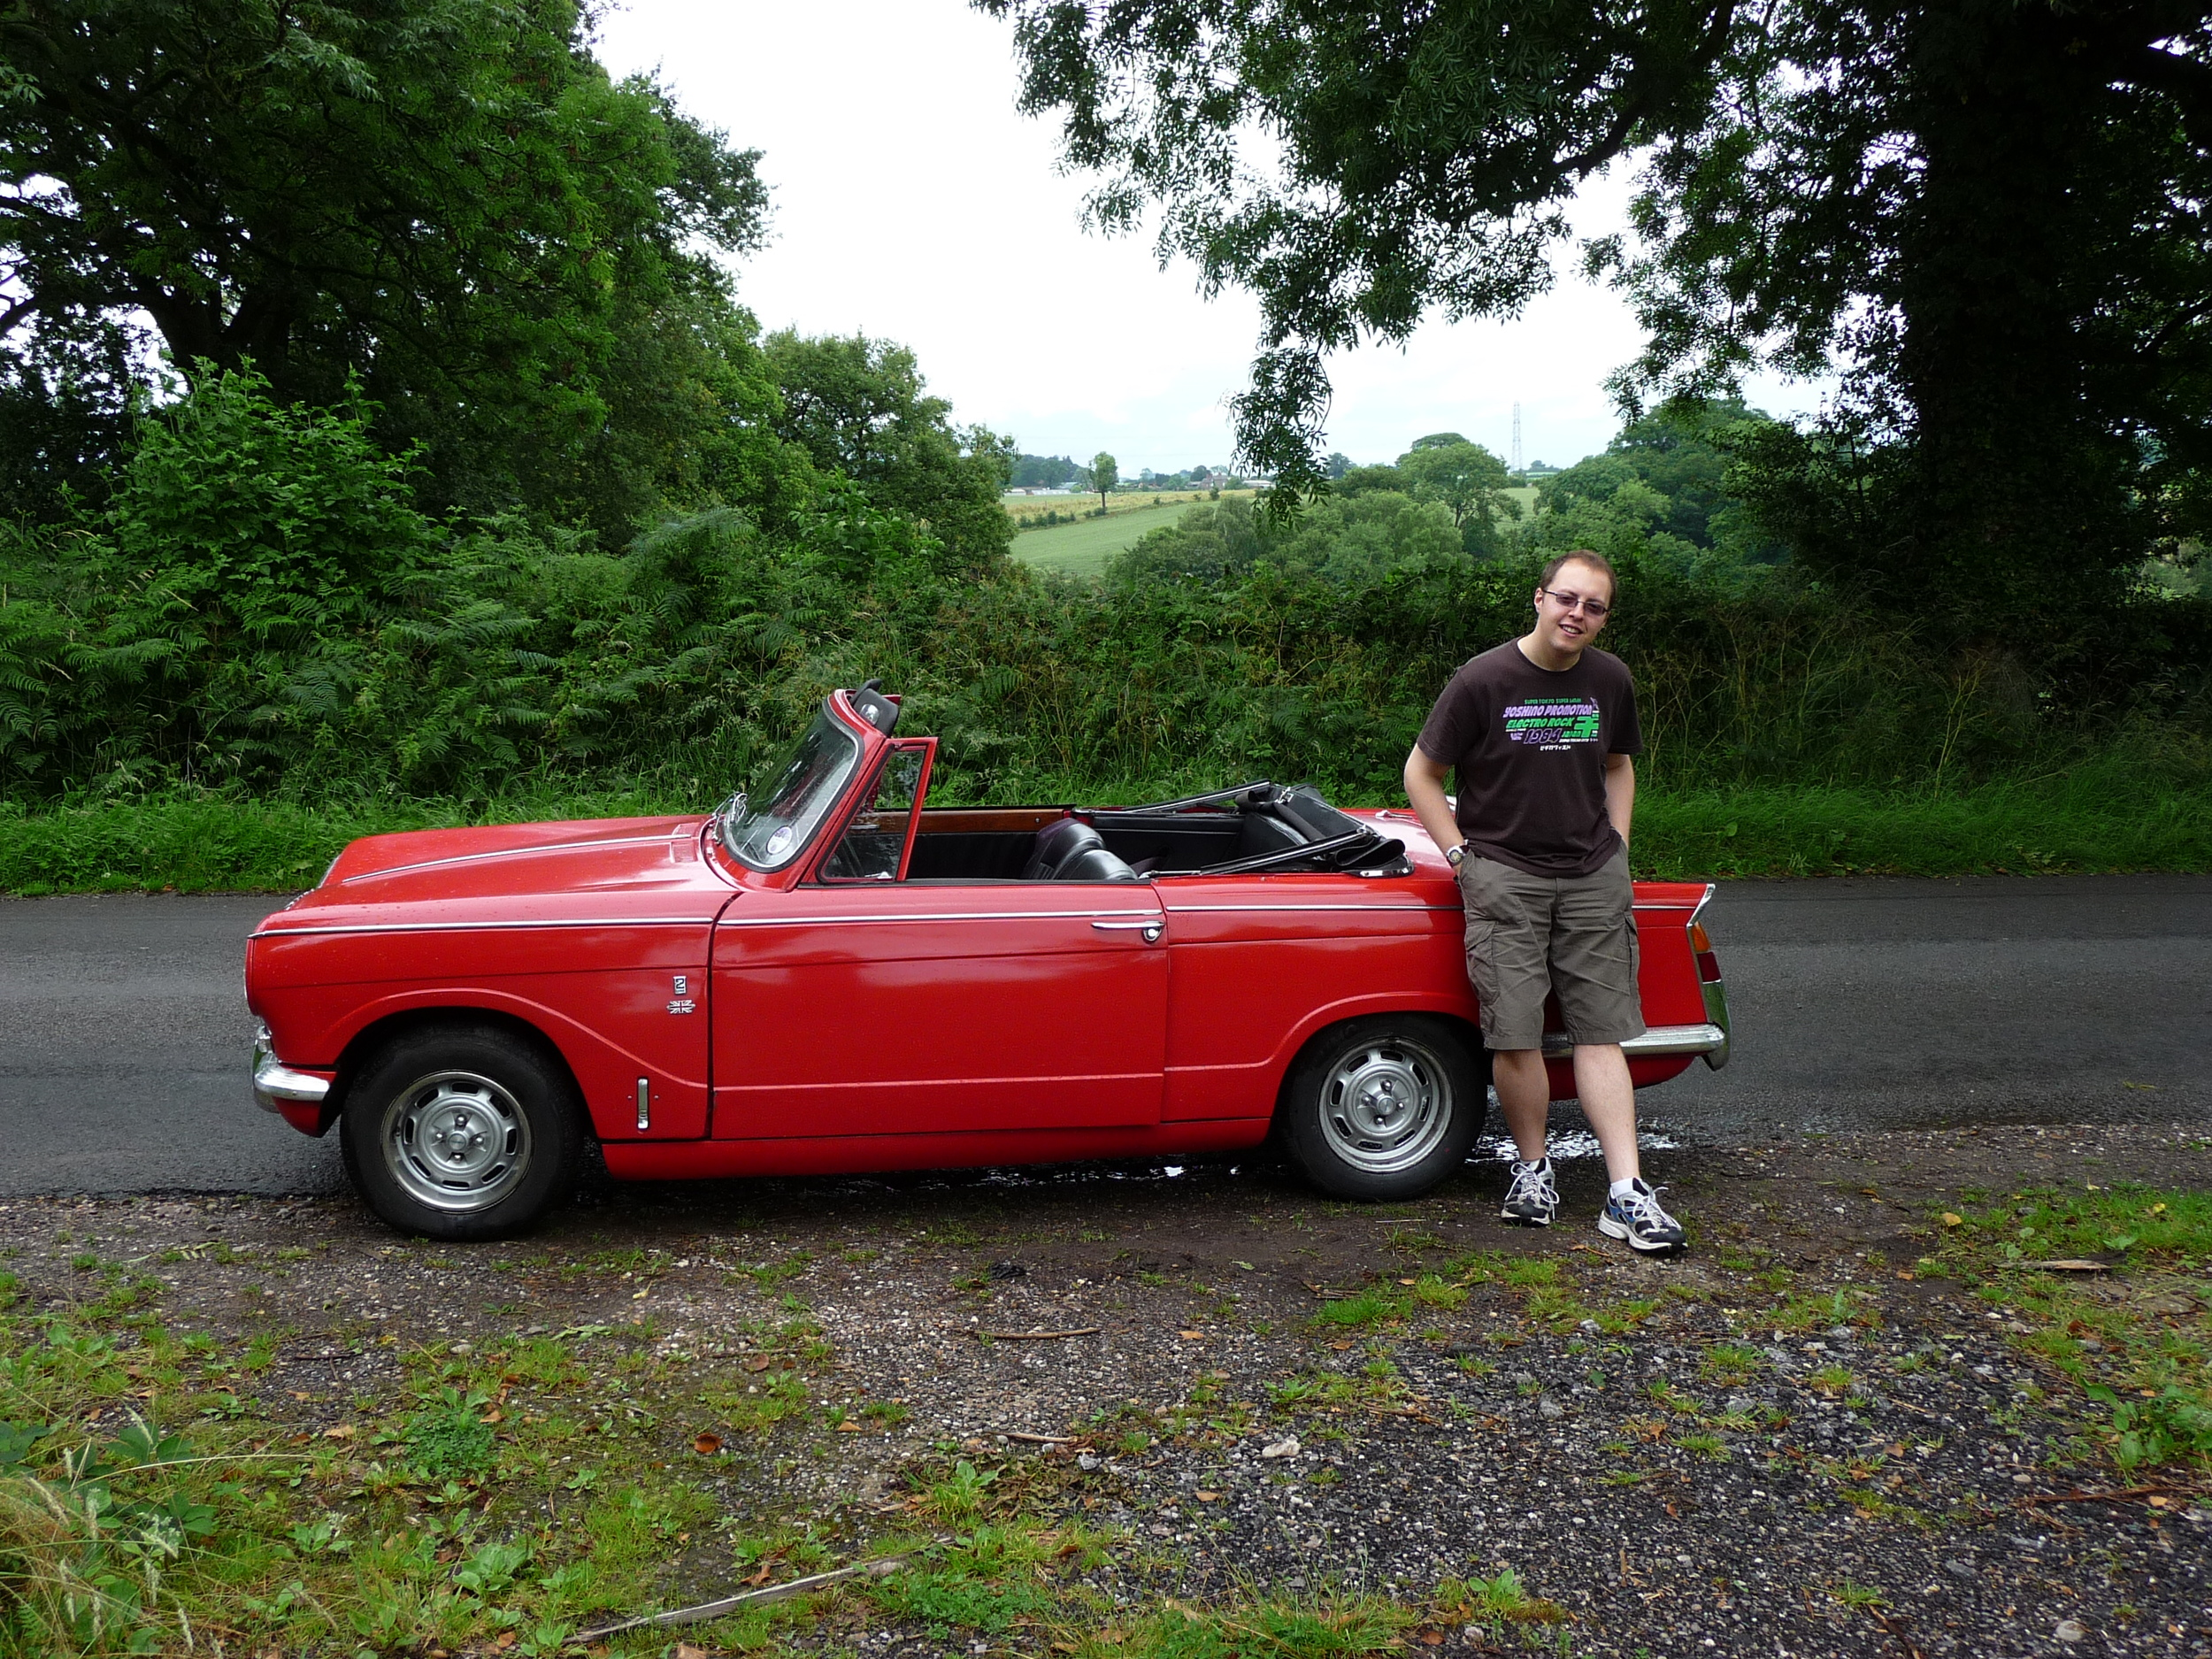 The Writing Man with his top on, and the Triumph Vitesse with its top down